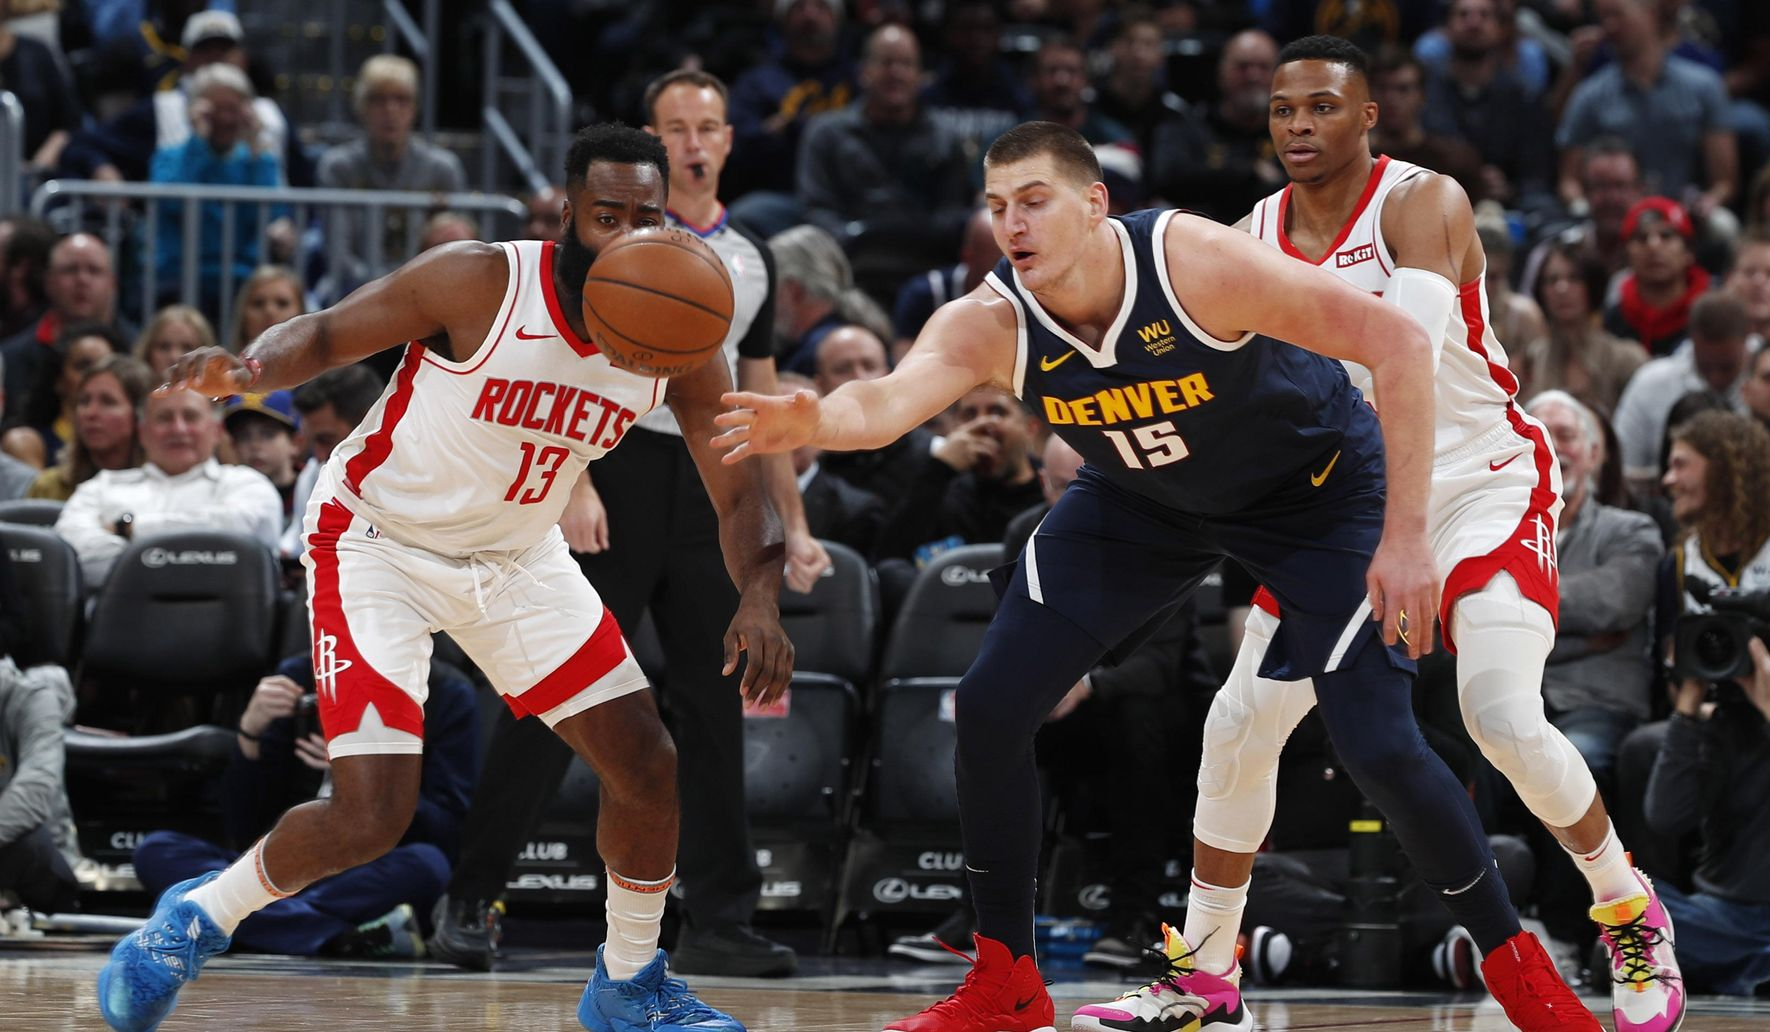 Rockets_nuggets_basketball_03921_c0-183-3270-2089_s1770x1032